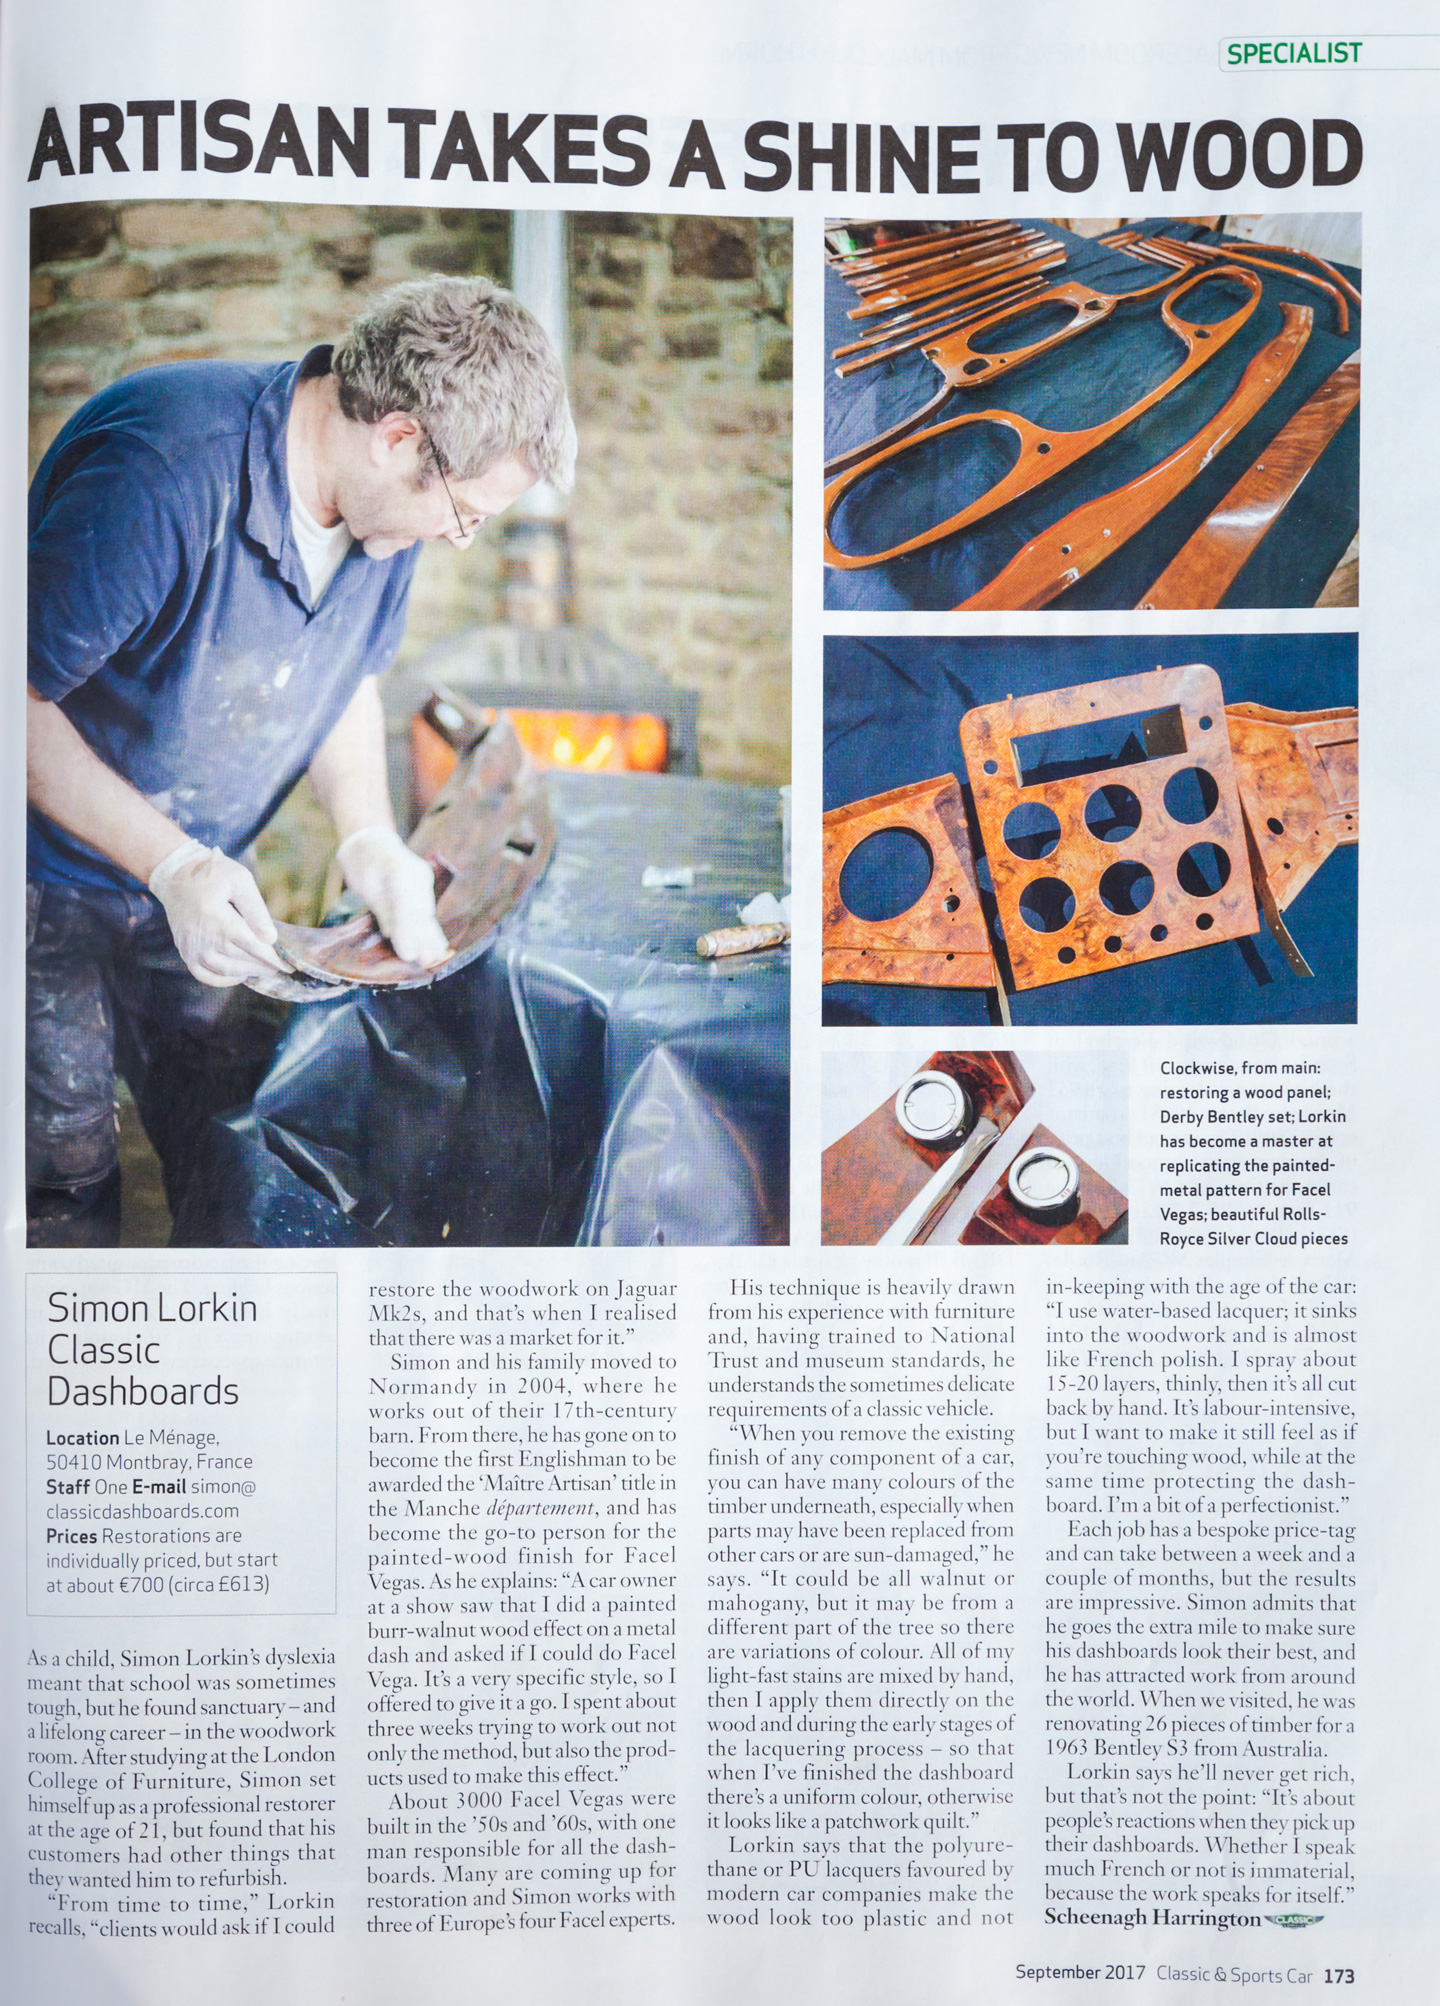 Discover the Classic and Sports Car article about Simon Lorkin of Classic Dashboards